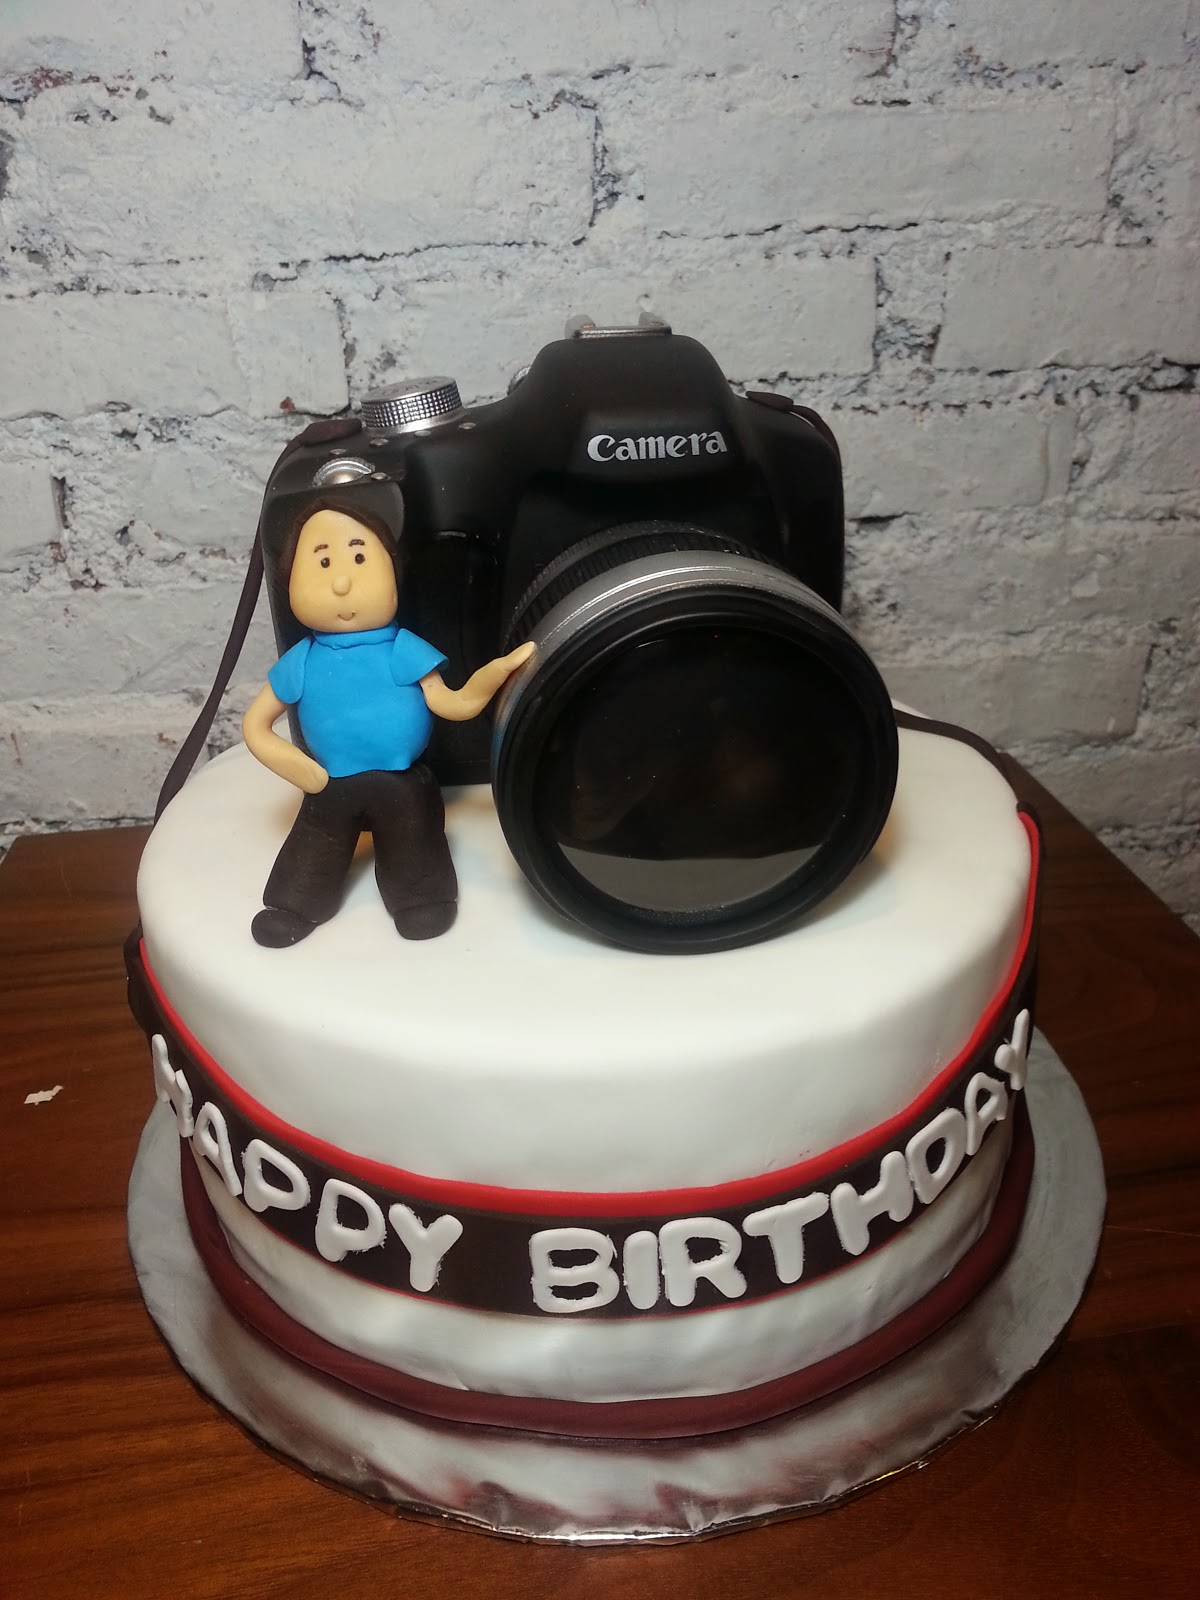 Camera Images For Cake : spatula and friends: May 2014